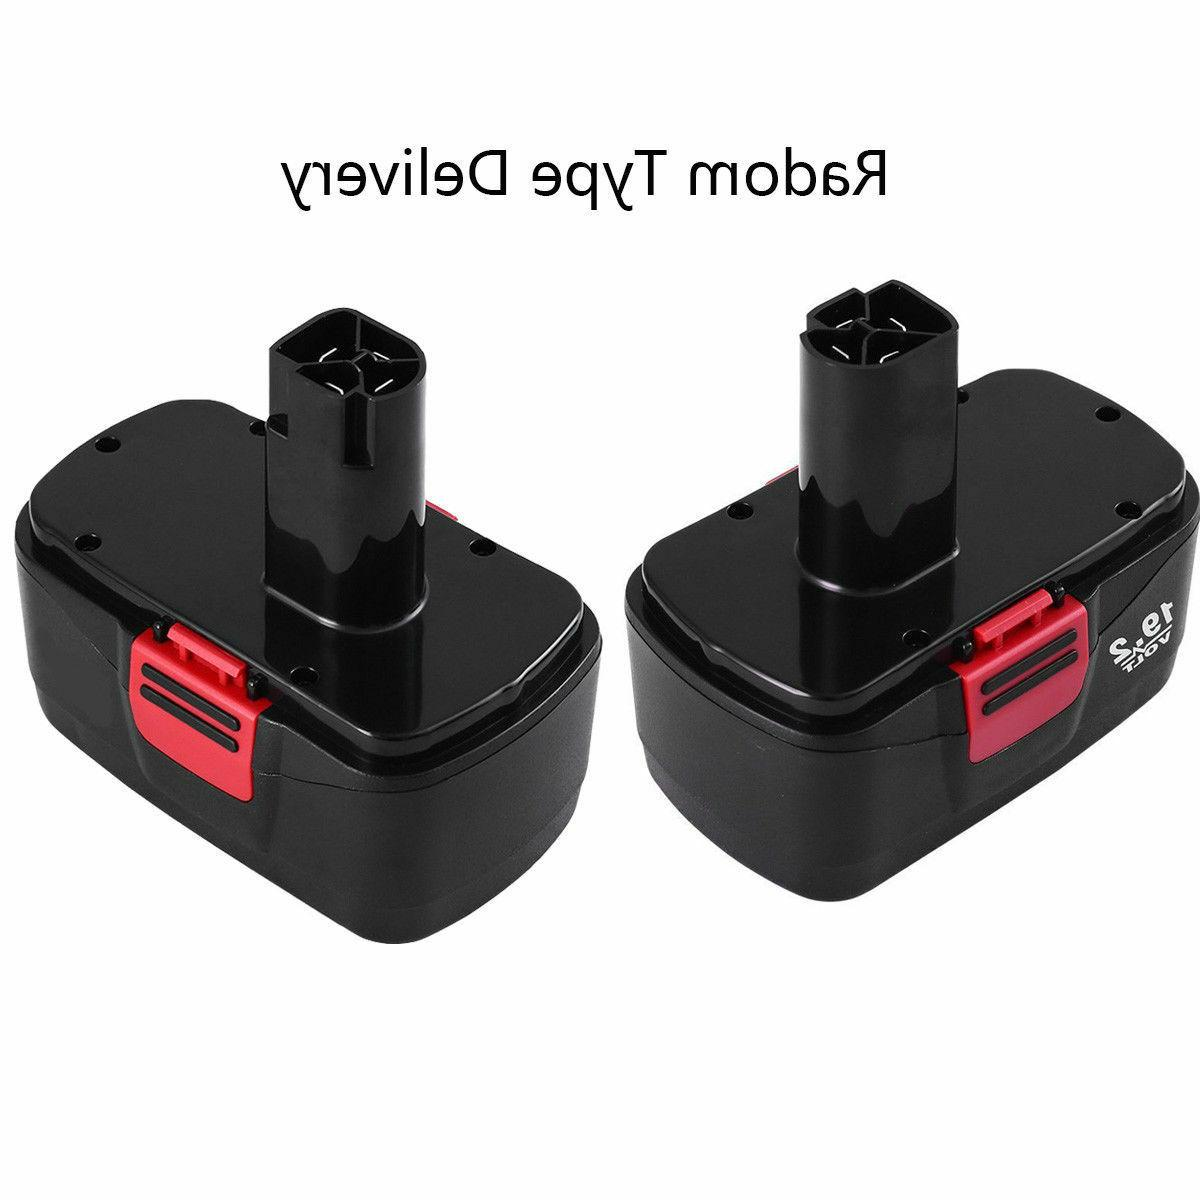 2-Replacement for Craftsman 19.2V Battery 2000mAh 130279005 11376